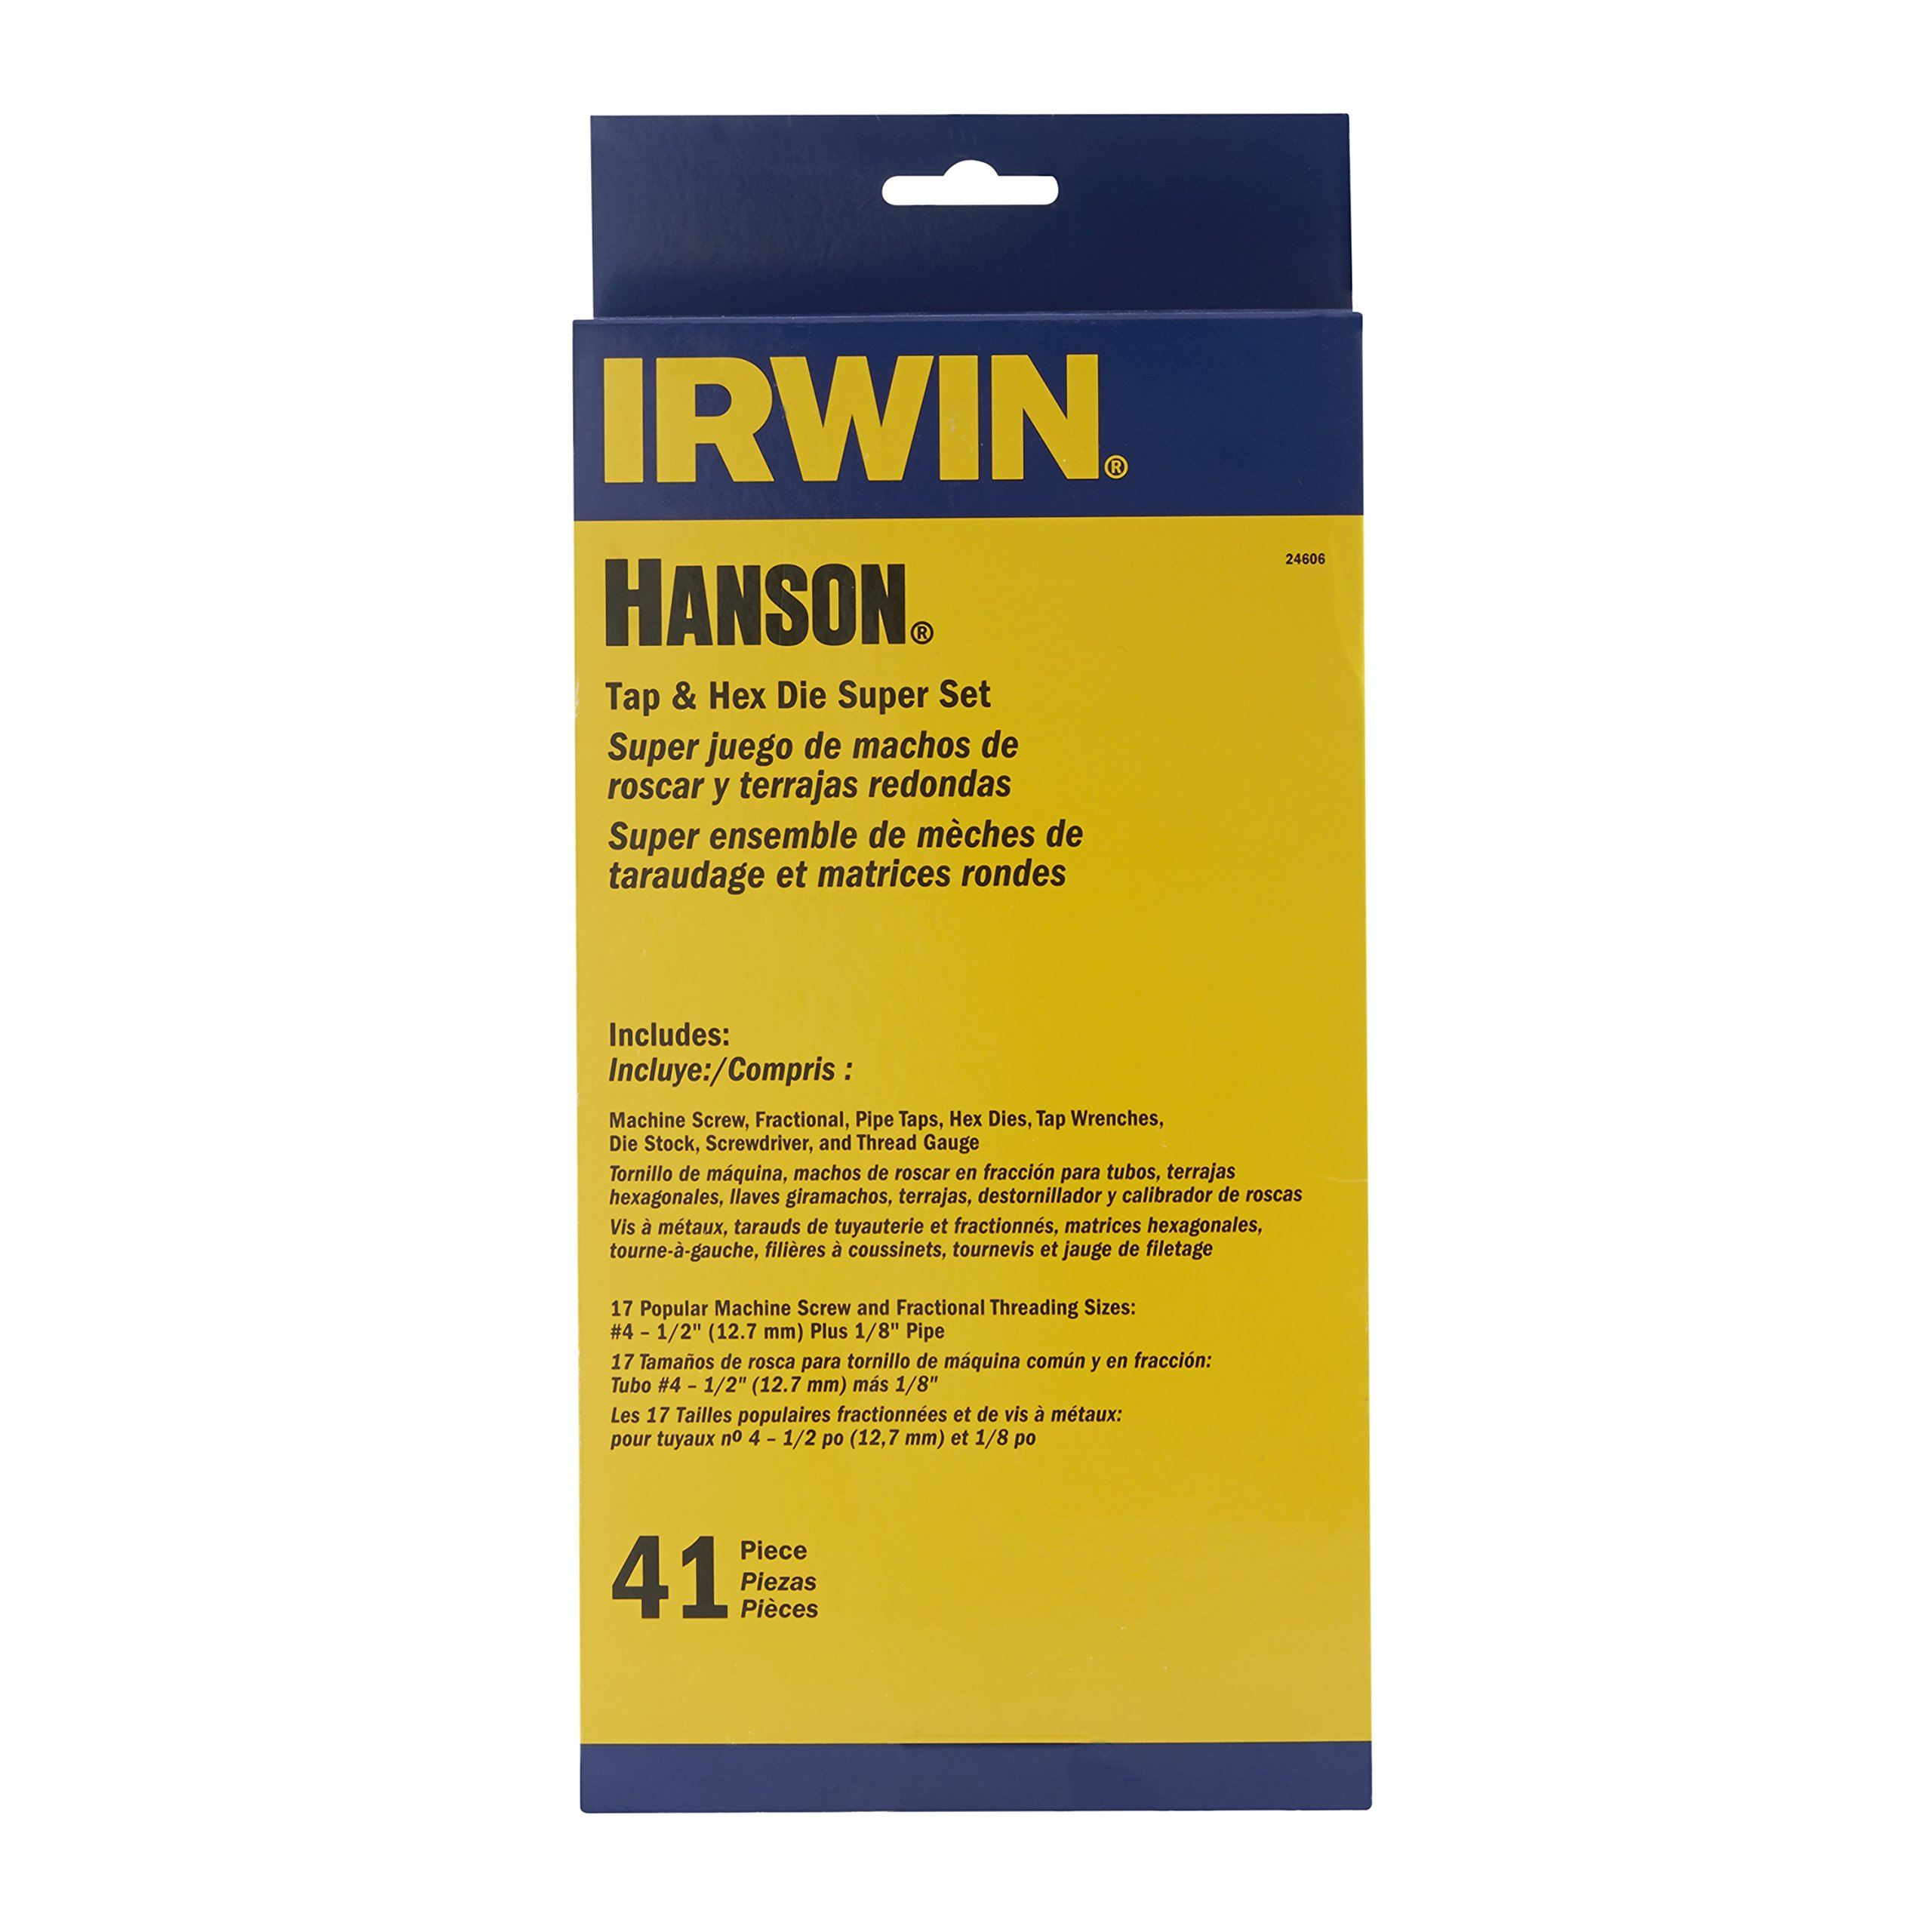 Irwin Industrial Tools 24606 Machine Screw with Fractional Tap and Die Set, 41-Piece